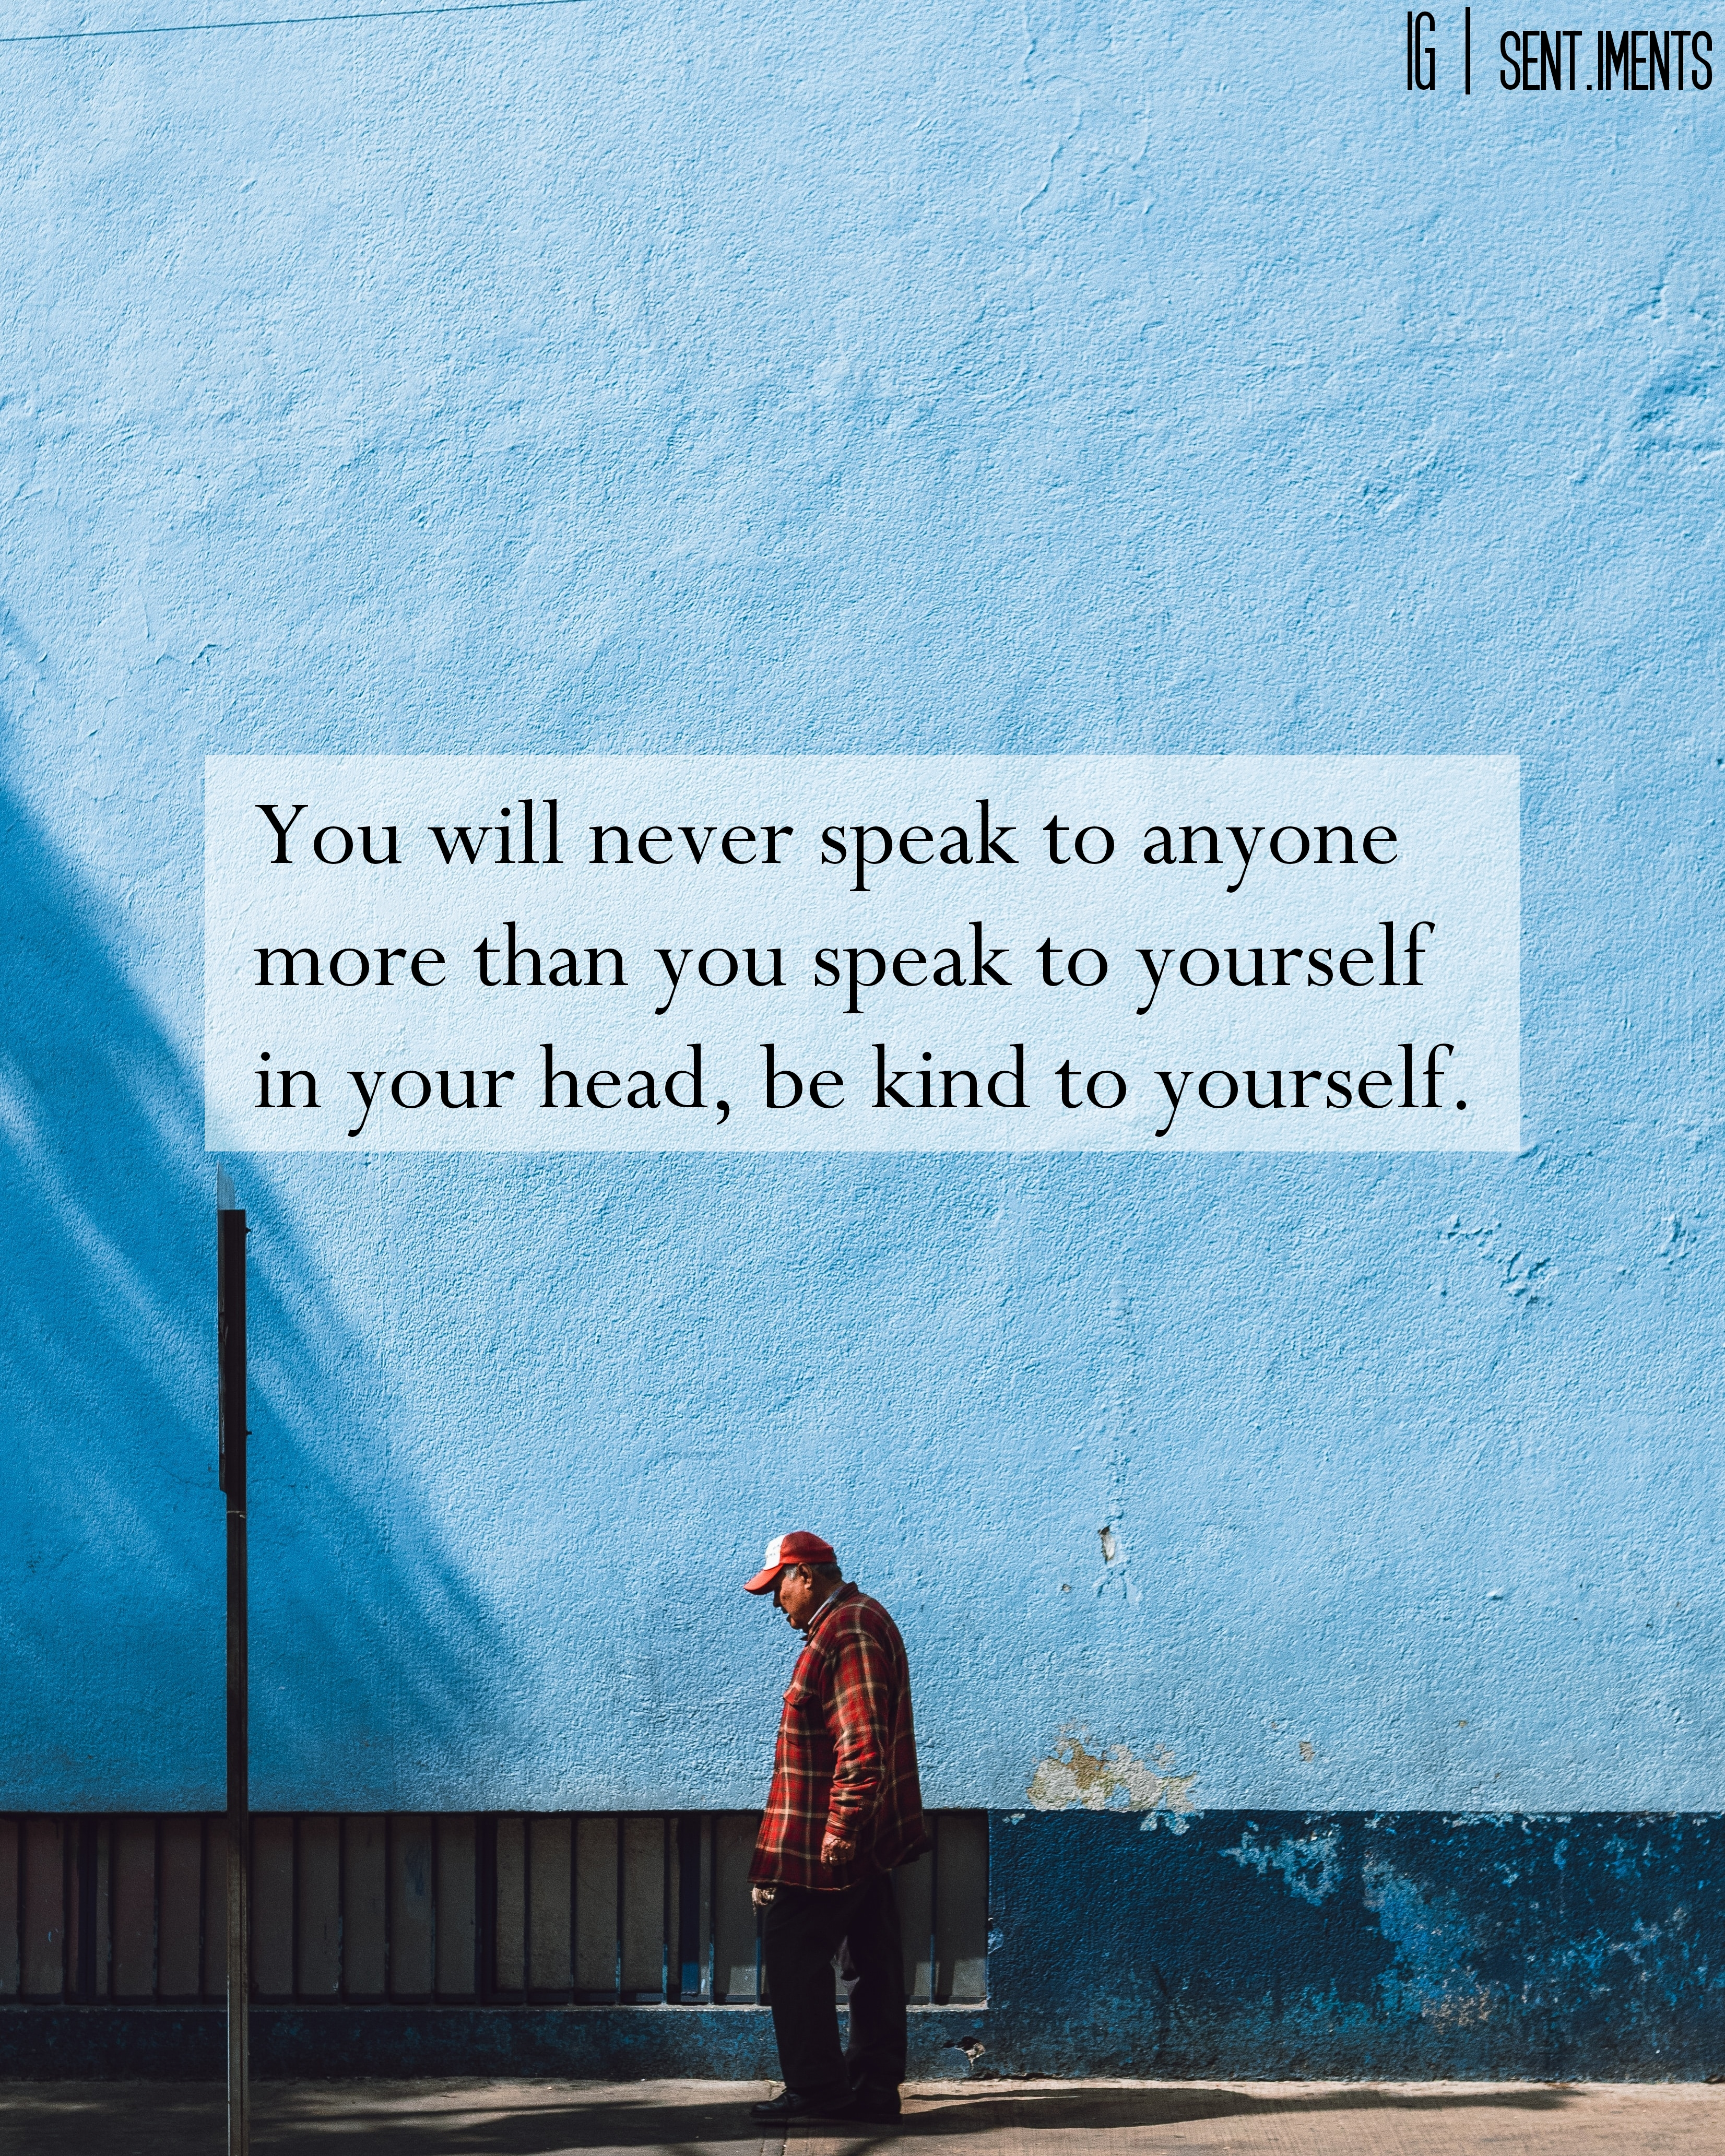 """You will never speak to anyone more than you speak to yourself in your head, be kind to yourself."" By Unknown [3304 X 4130]"